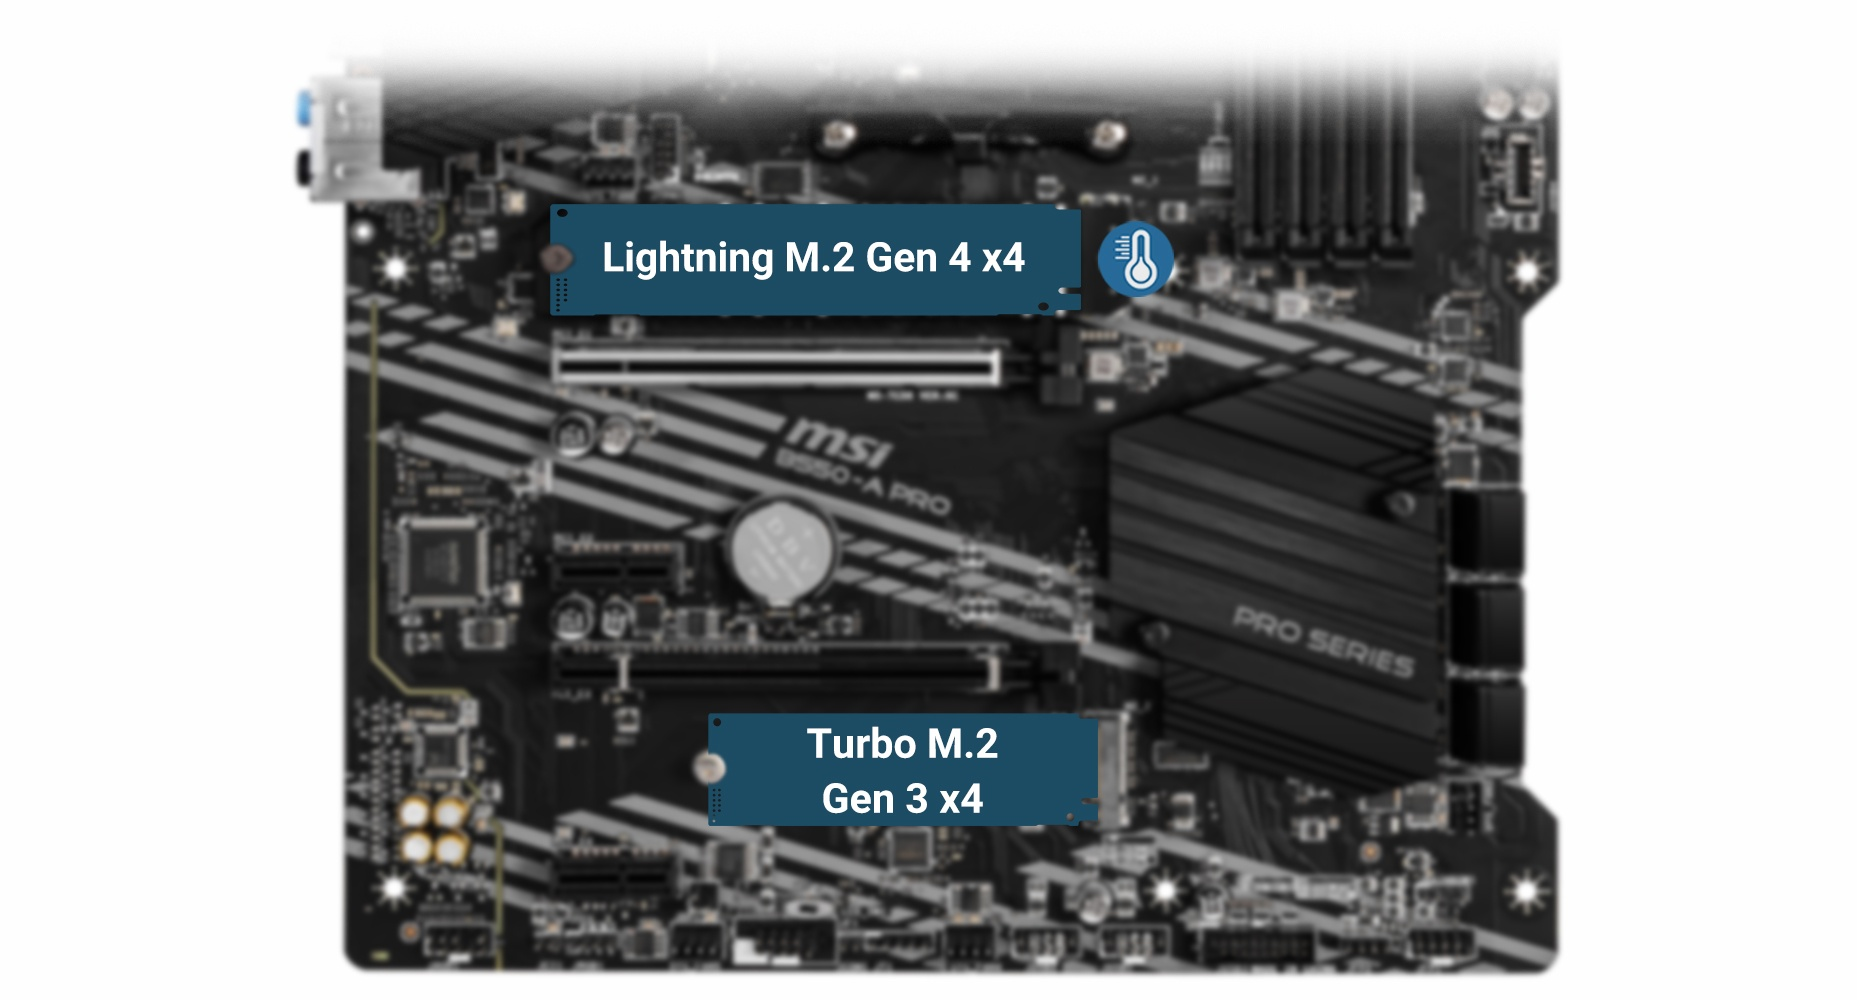 LIGHTNING GEN4 of the motherboard